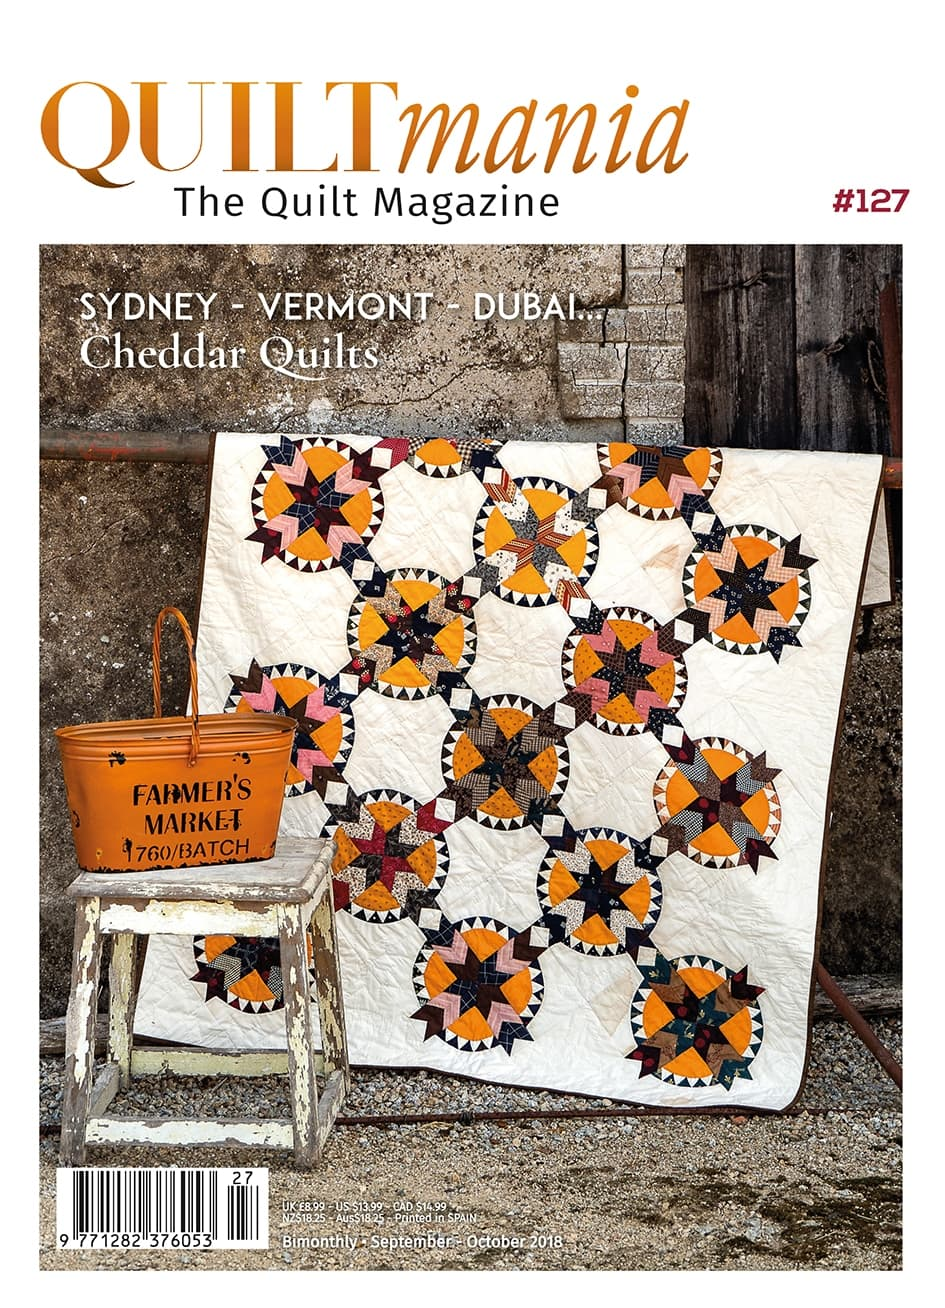 My Dubai Quilt Show Article is in the Latest Quiltmania Issue